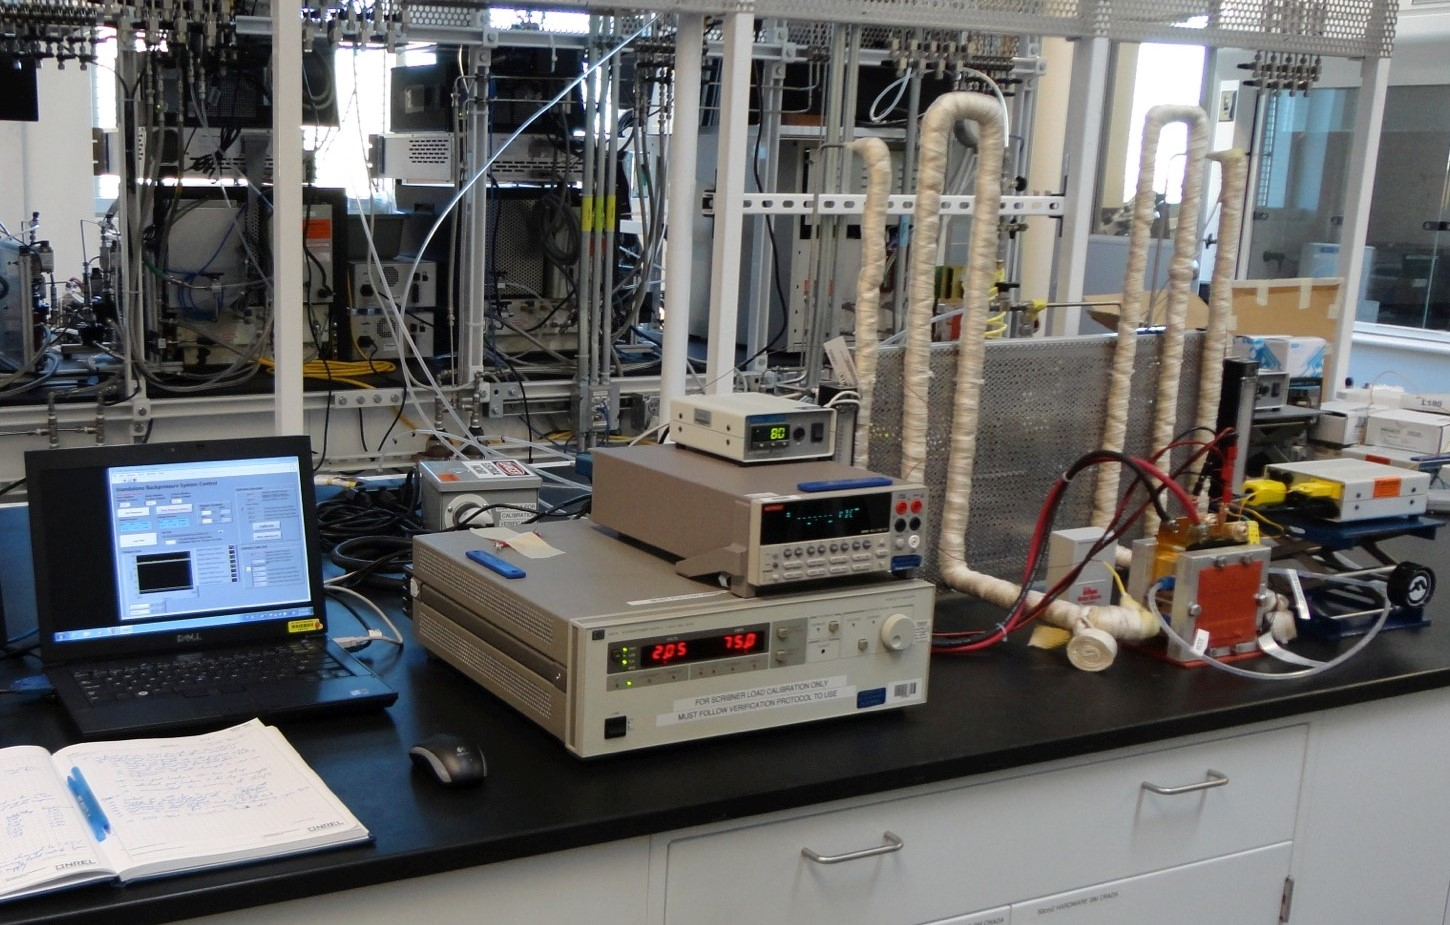 Bench-top electrolyzer system in a laboratory